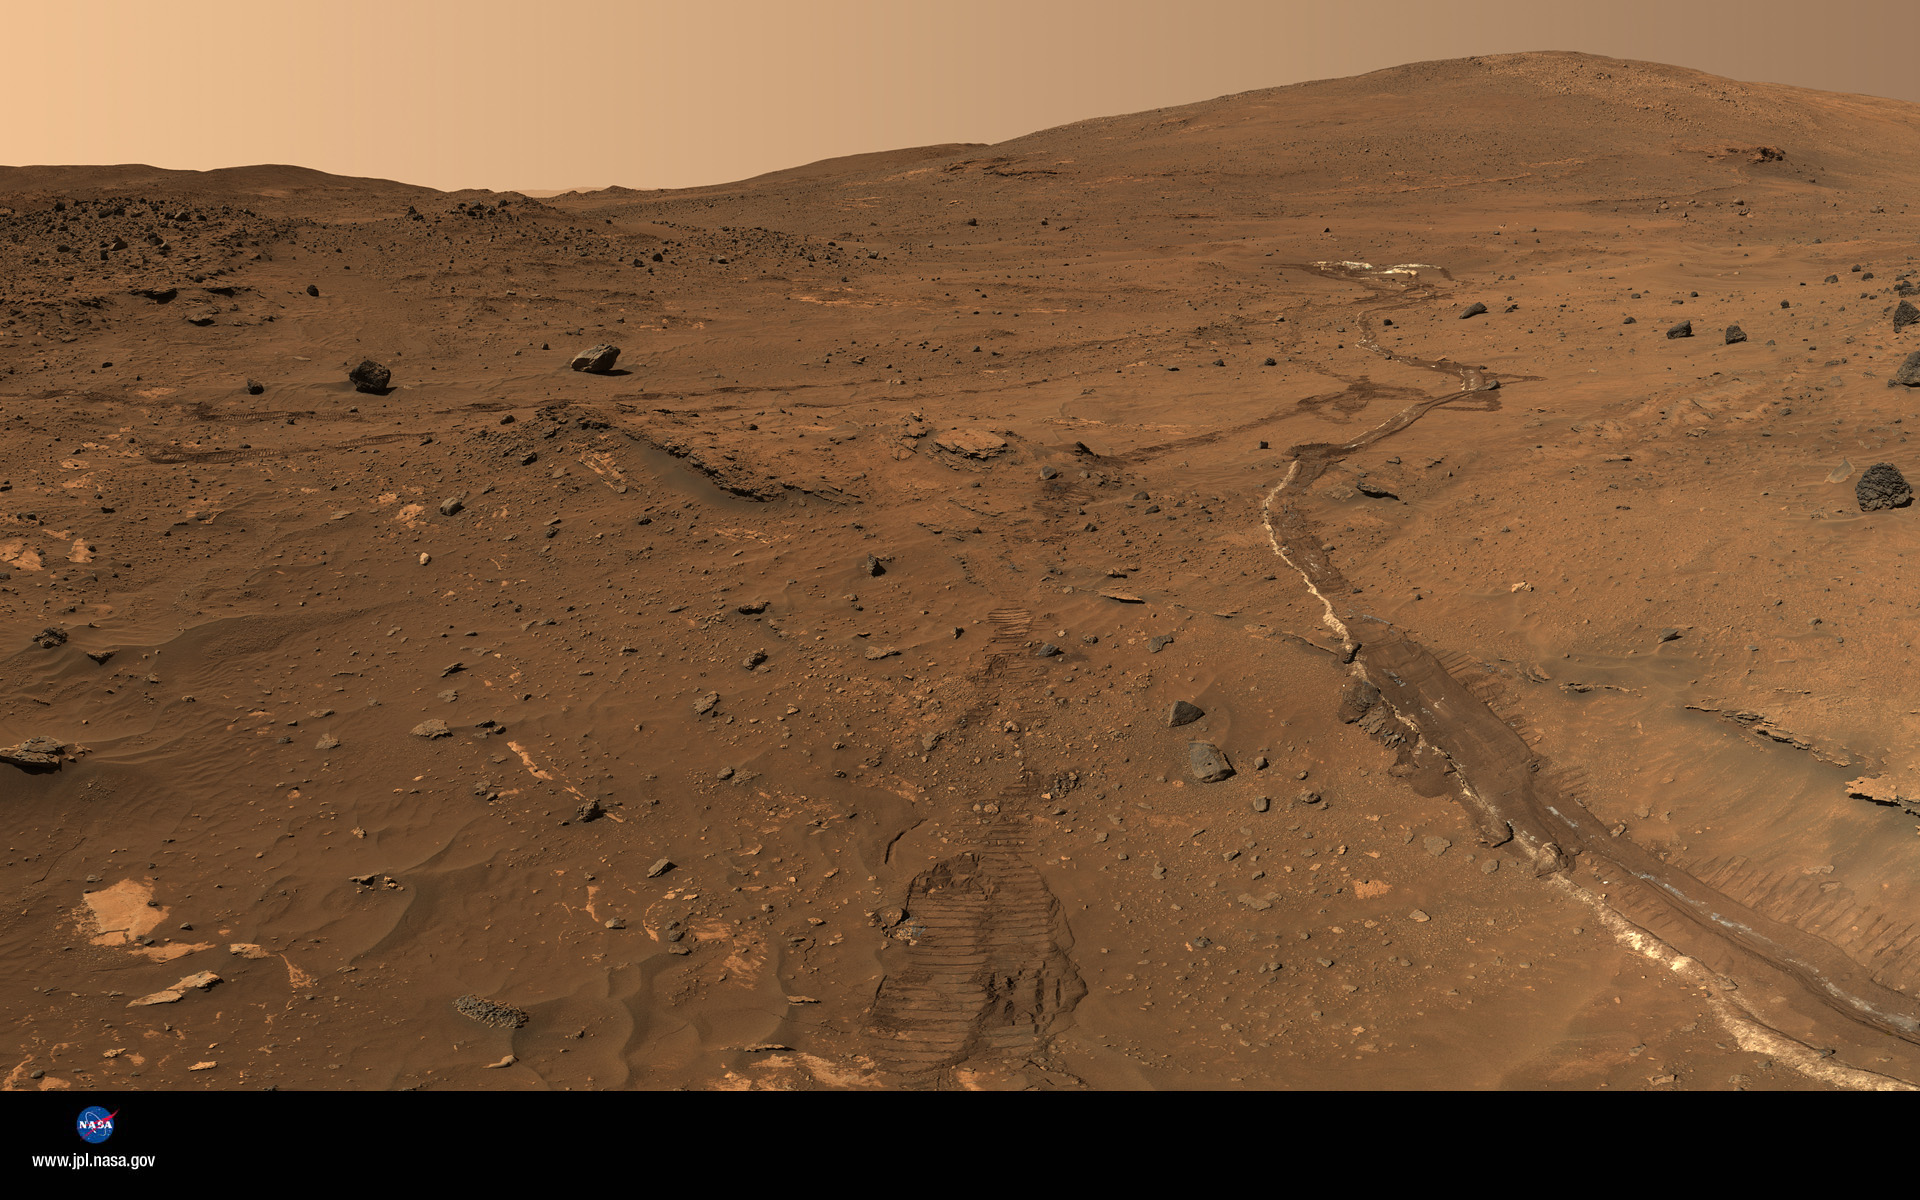 curiosity rover on mars background - photo #35